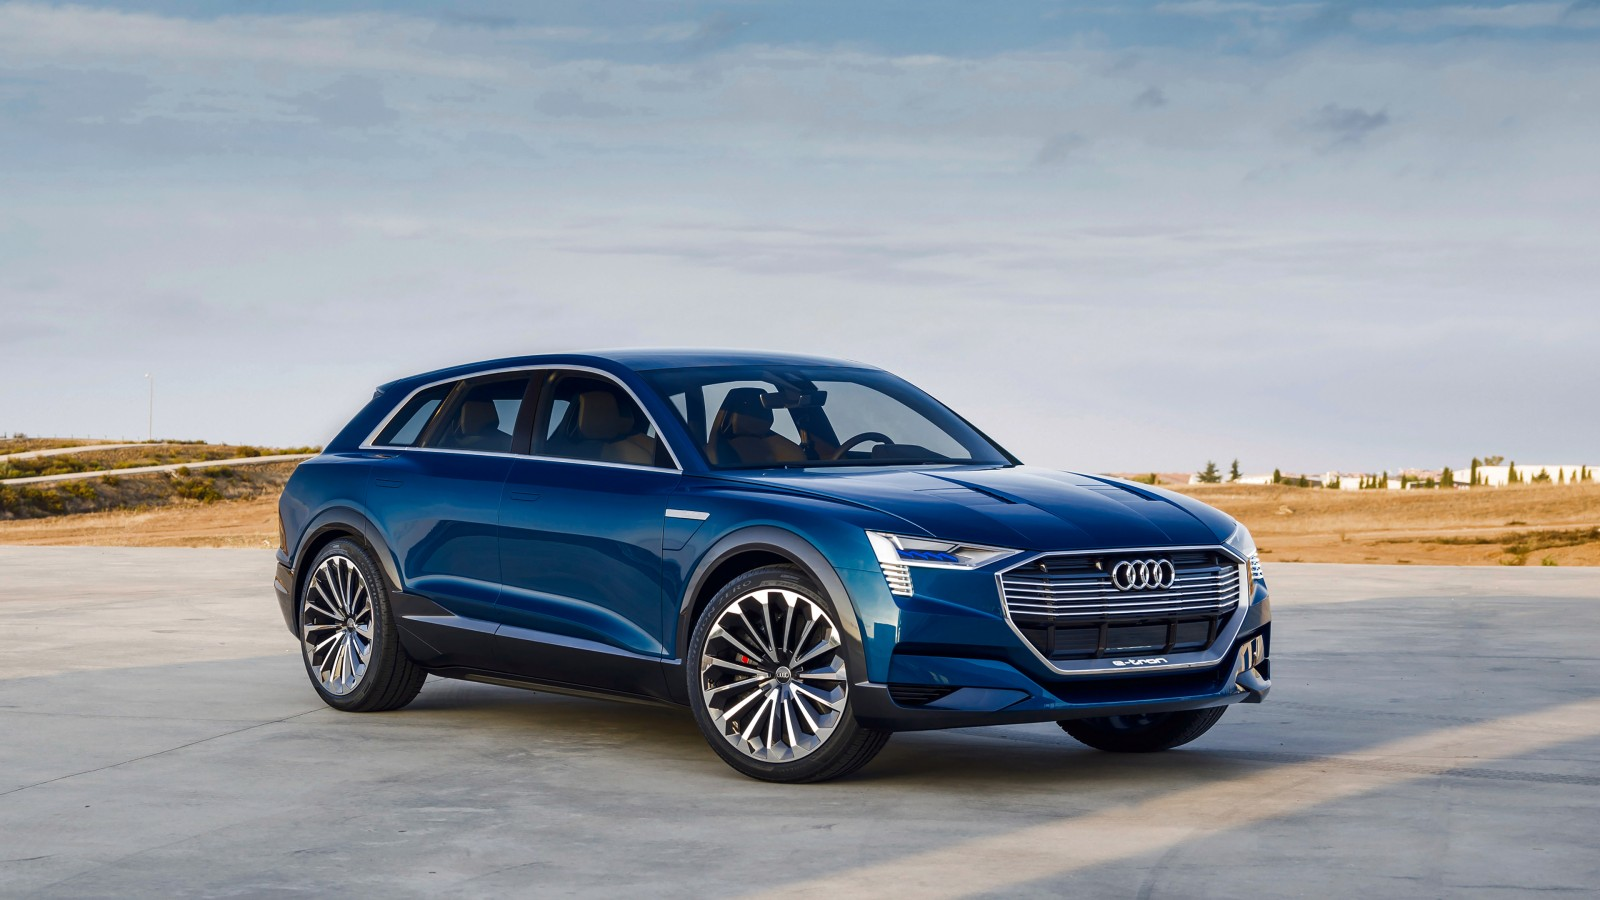 2018 Audi e Tron Quattro Concept Wallpaper | HD Car ...